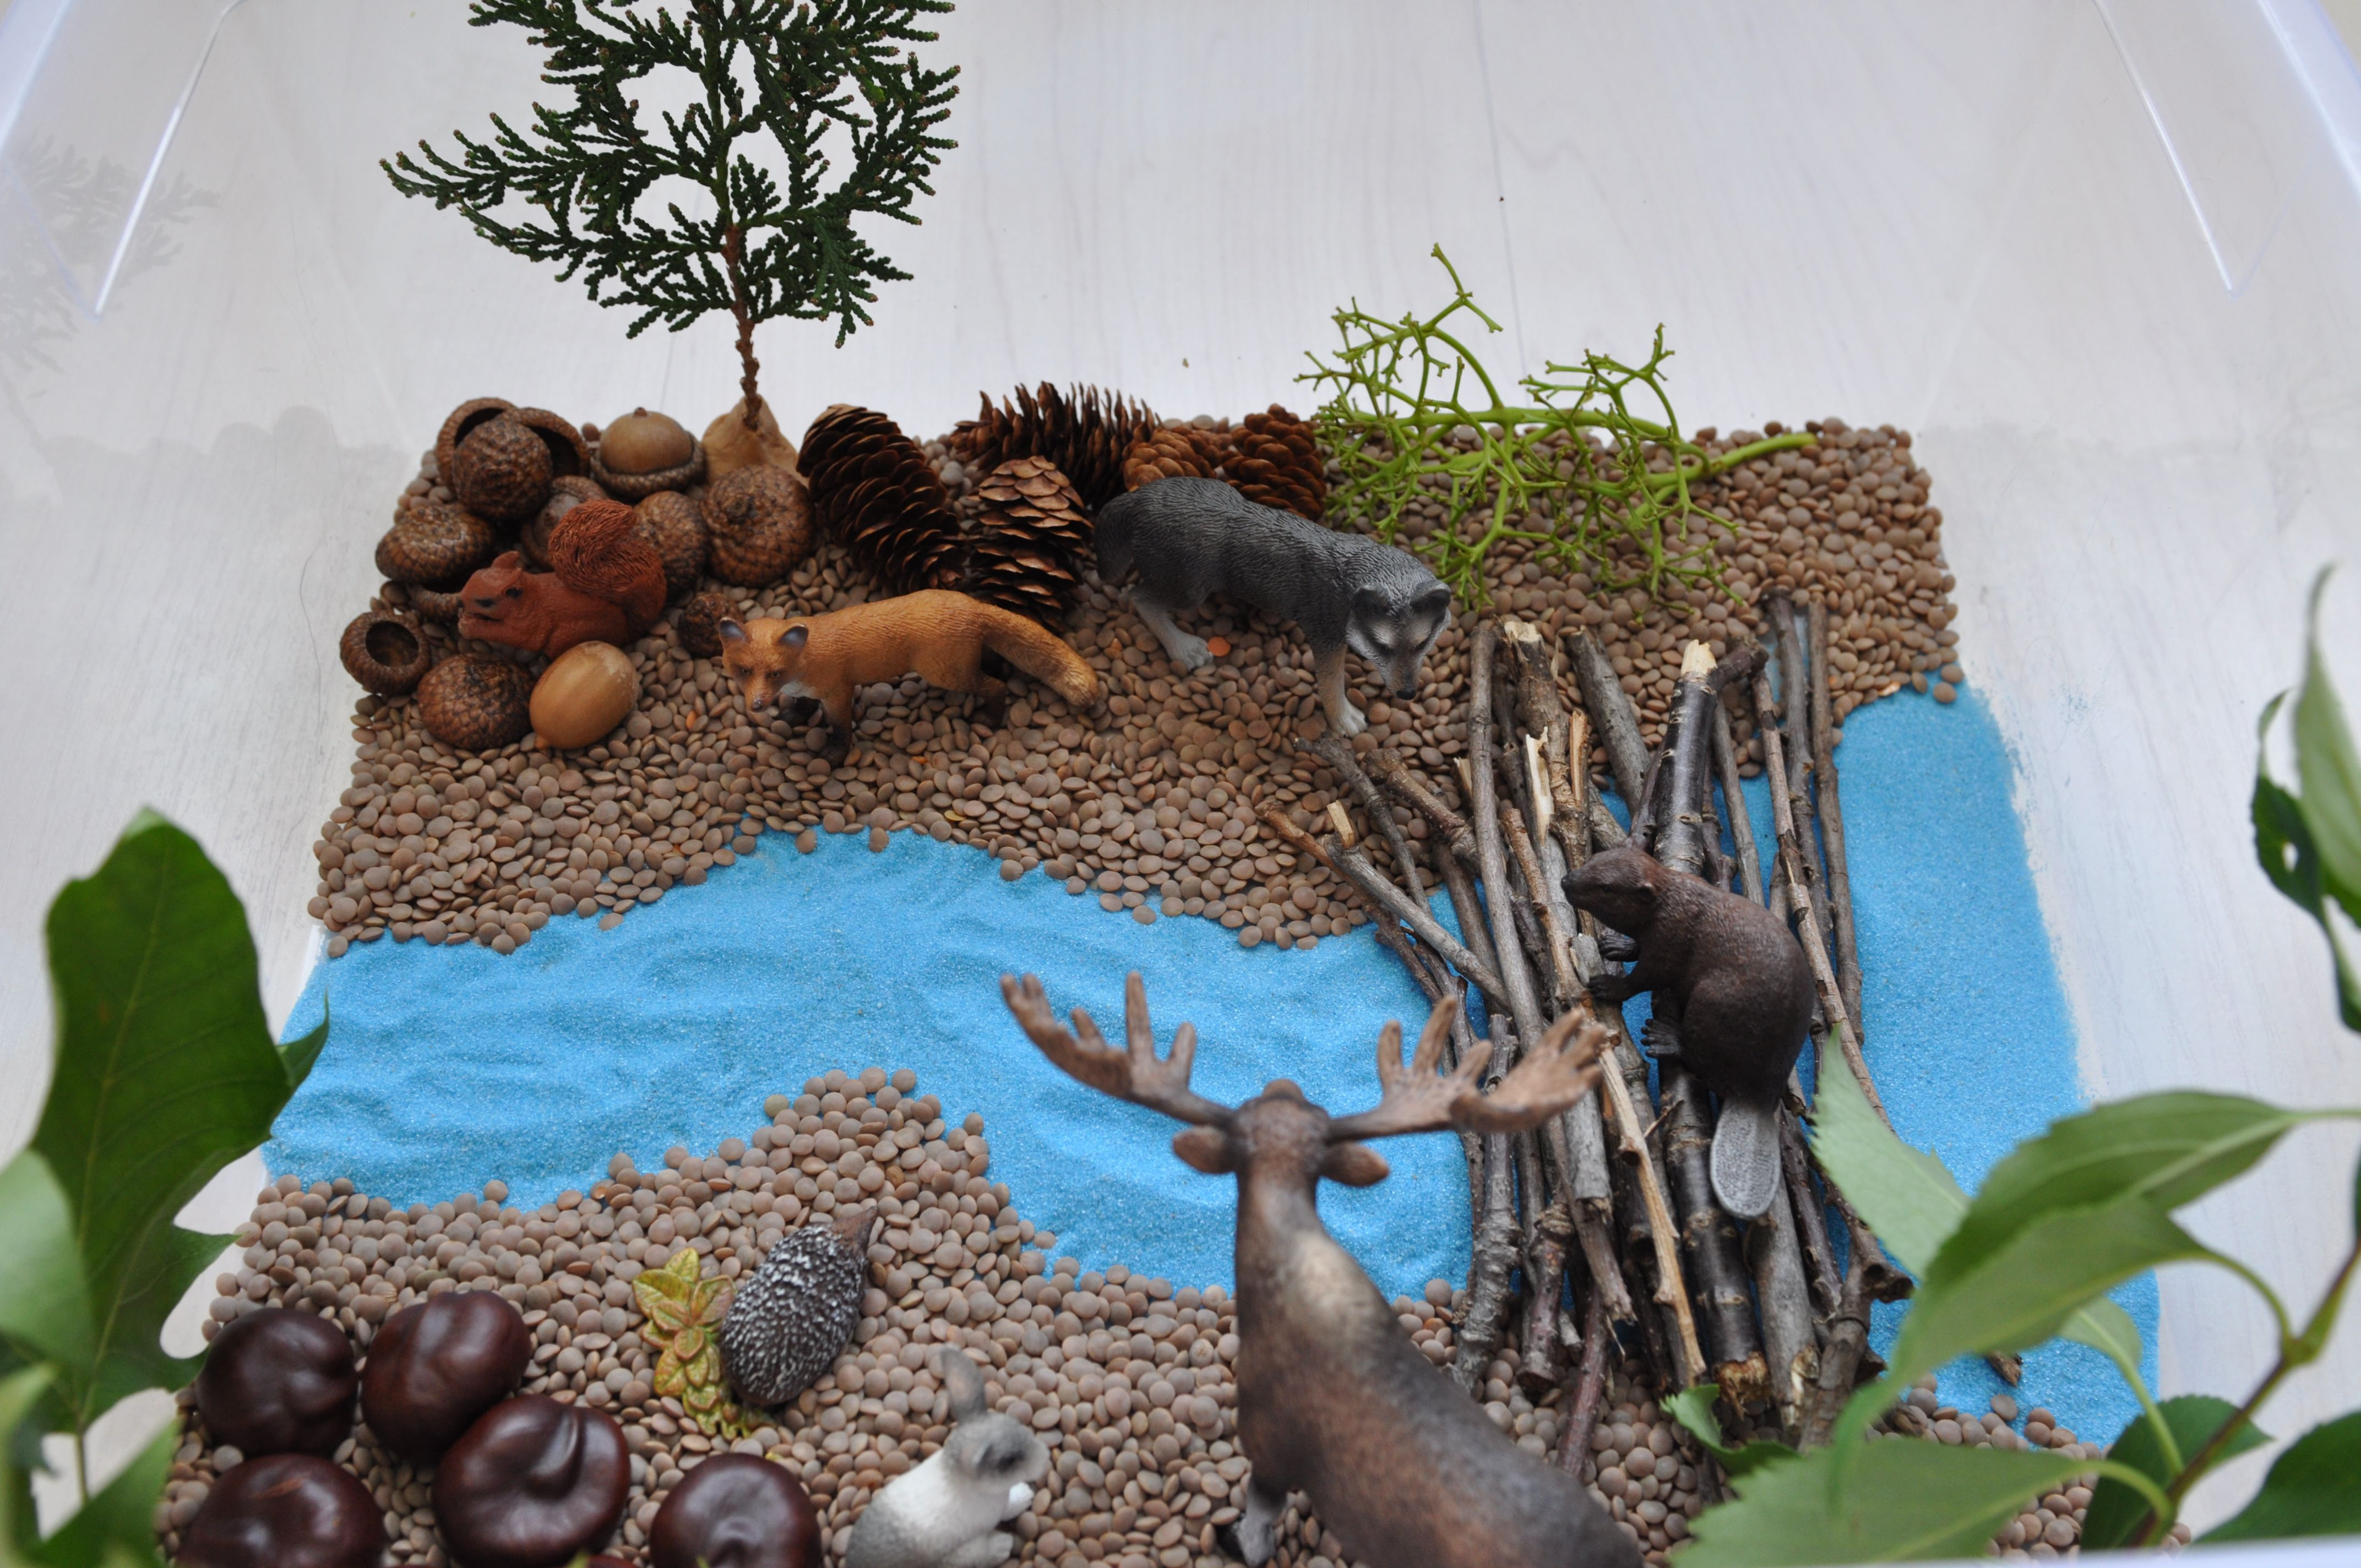 make a beaver dam out of sticks and set up a forest with animals around it sensory bin ingredients lentils blue sand sticks chestnuts acorn caps  [ 4288 x 2848 Pixel ]